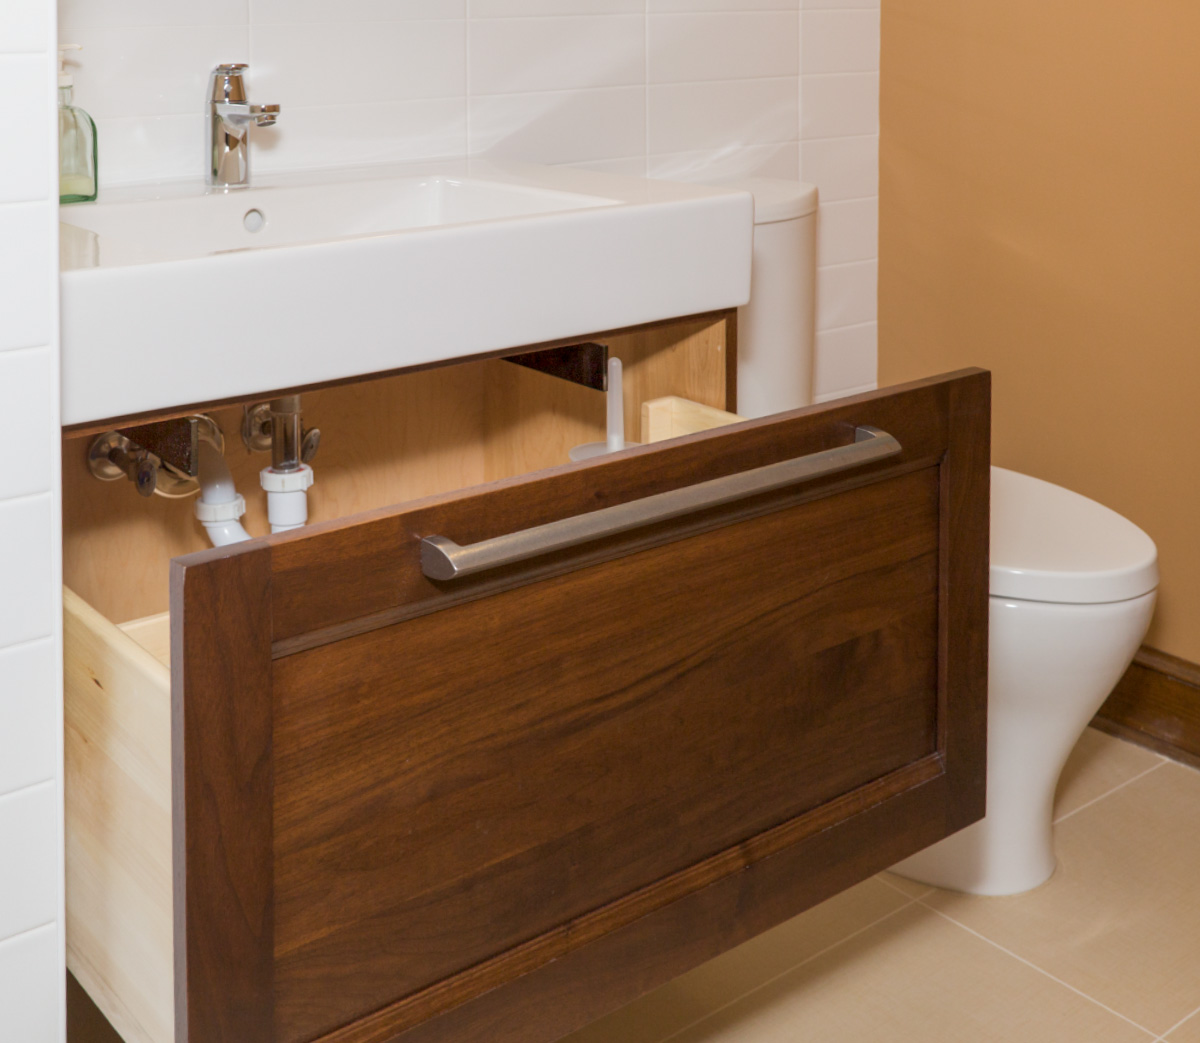 Floating vanity mounting systems in bathrooms federal brace for Floating bathroom vanity brackets